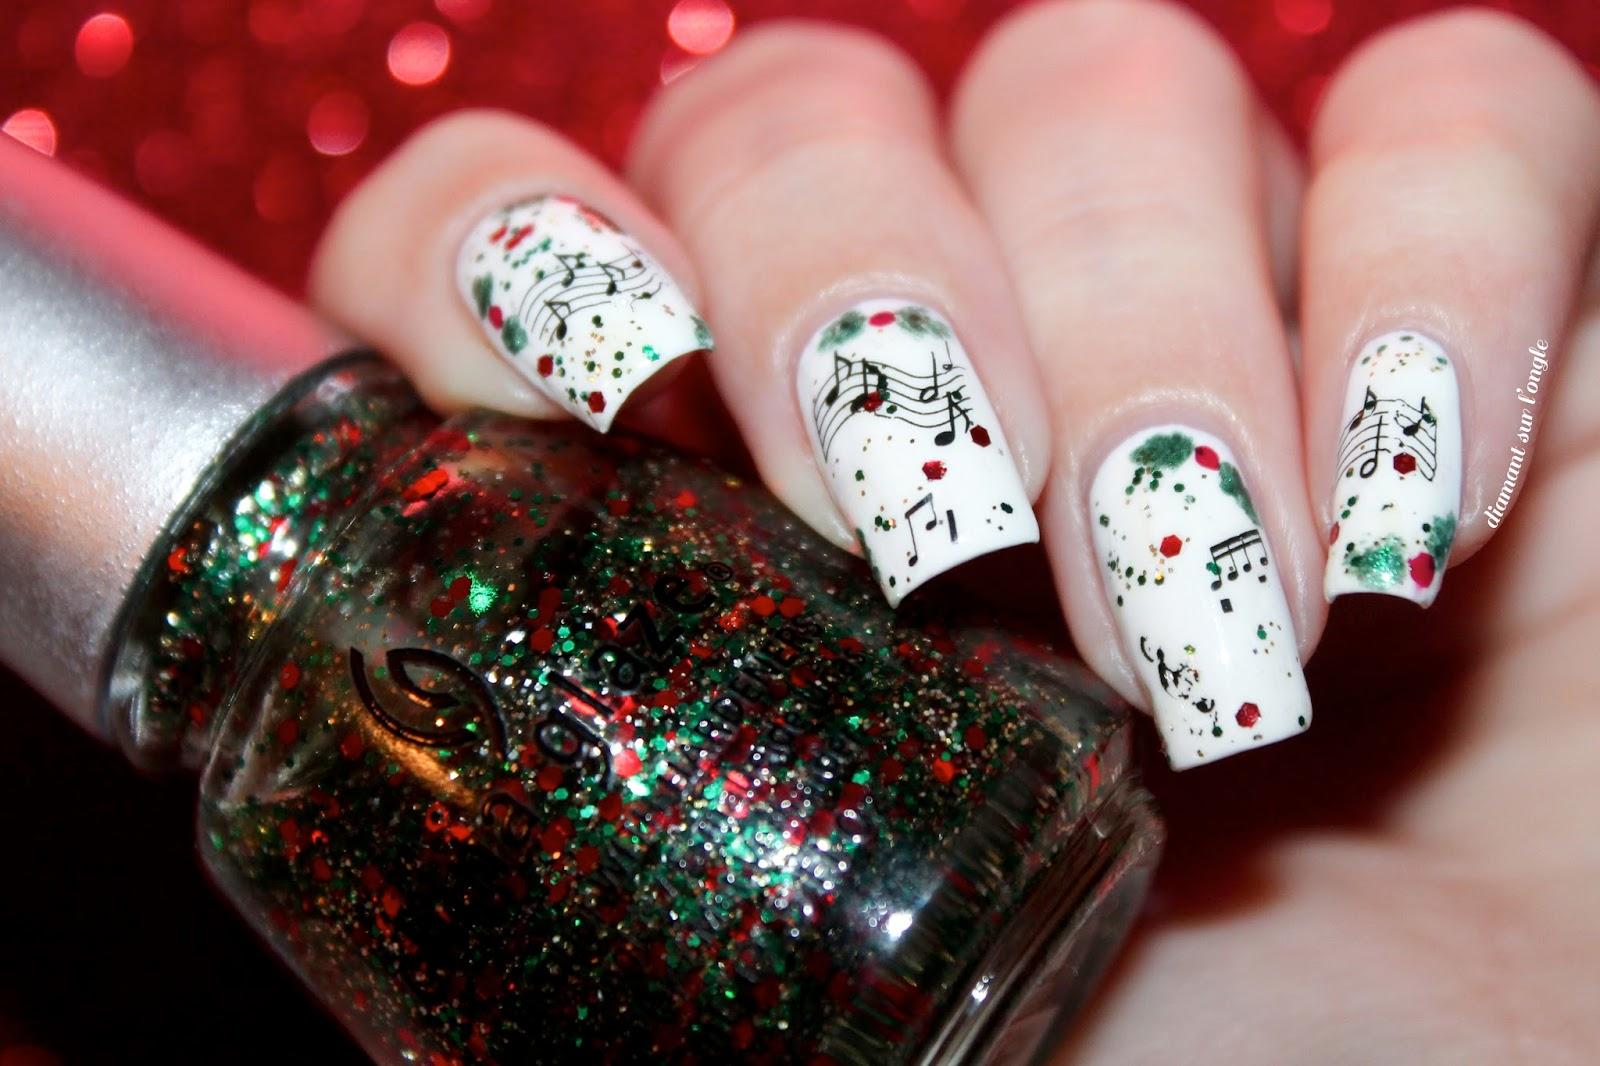 ♬ A Christmas Carols Nail Art ♬